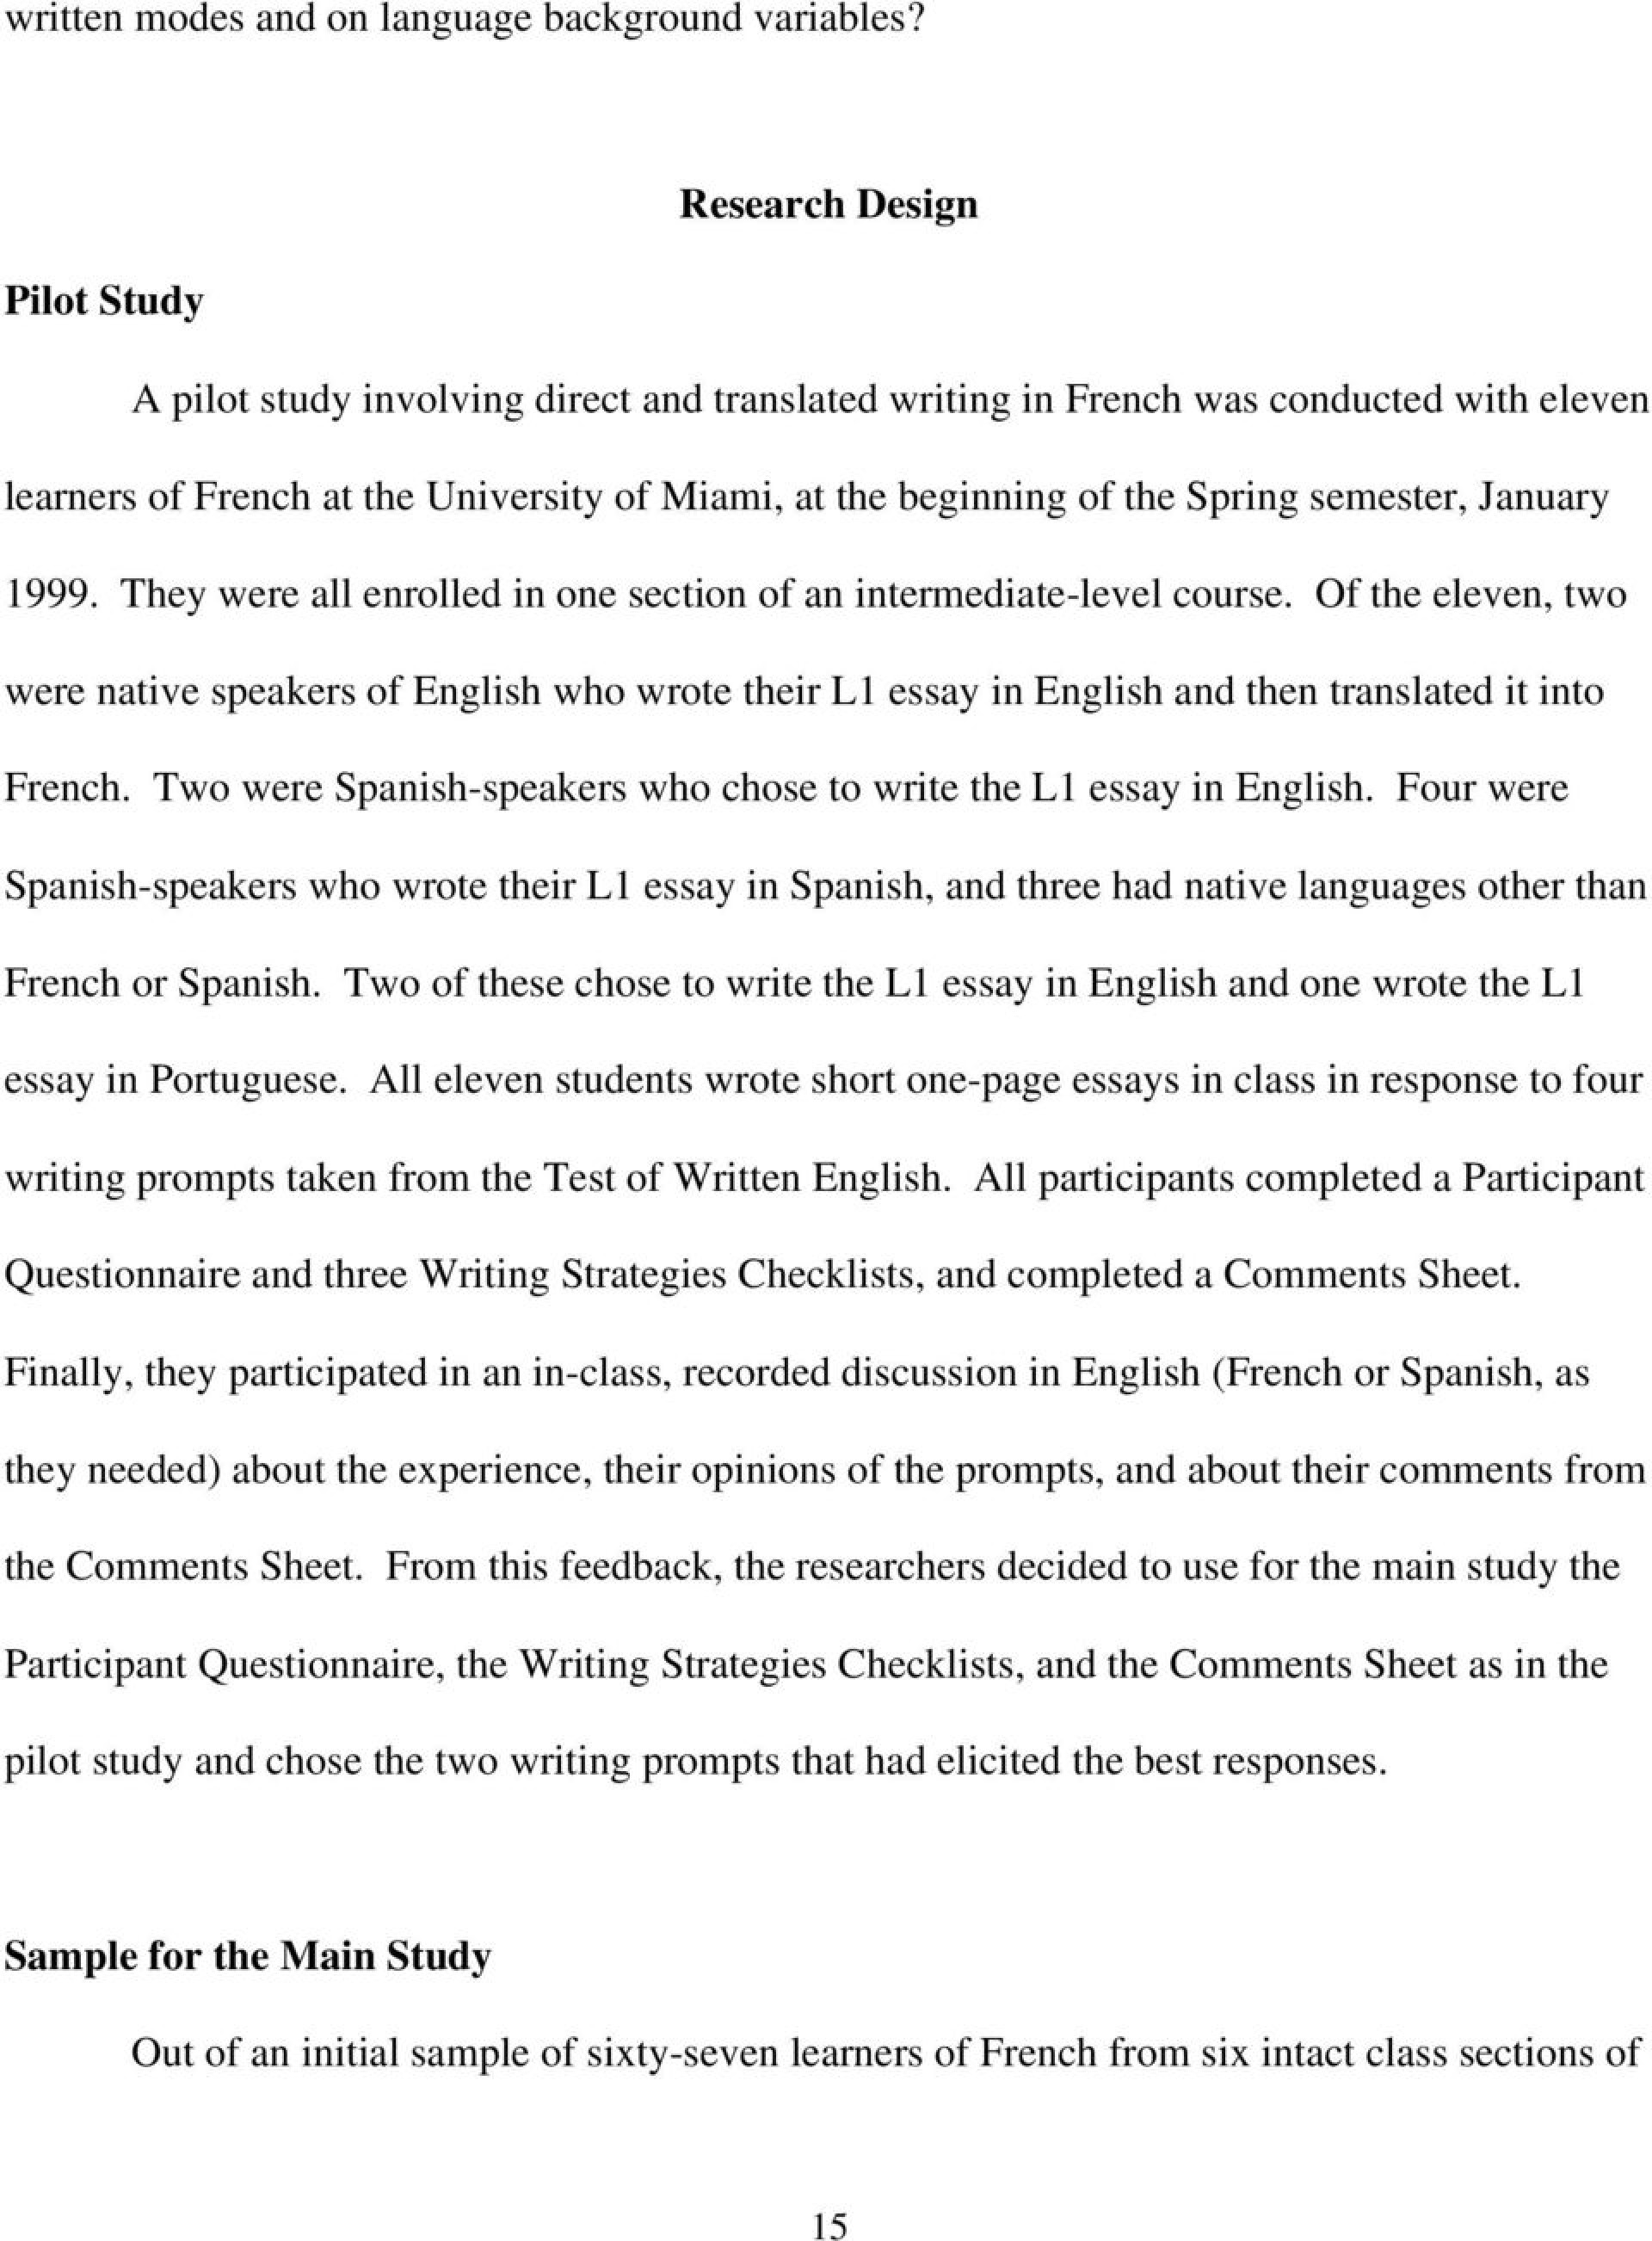 001 Essay Meaning In Spanish Example Direct Vs Translated Writing What Students Do And The Google Translate Pa Write Your My Teaching Essays Phrases How To An About Yourself Marvelous English Means Friend 1920